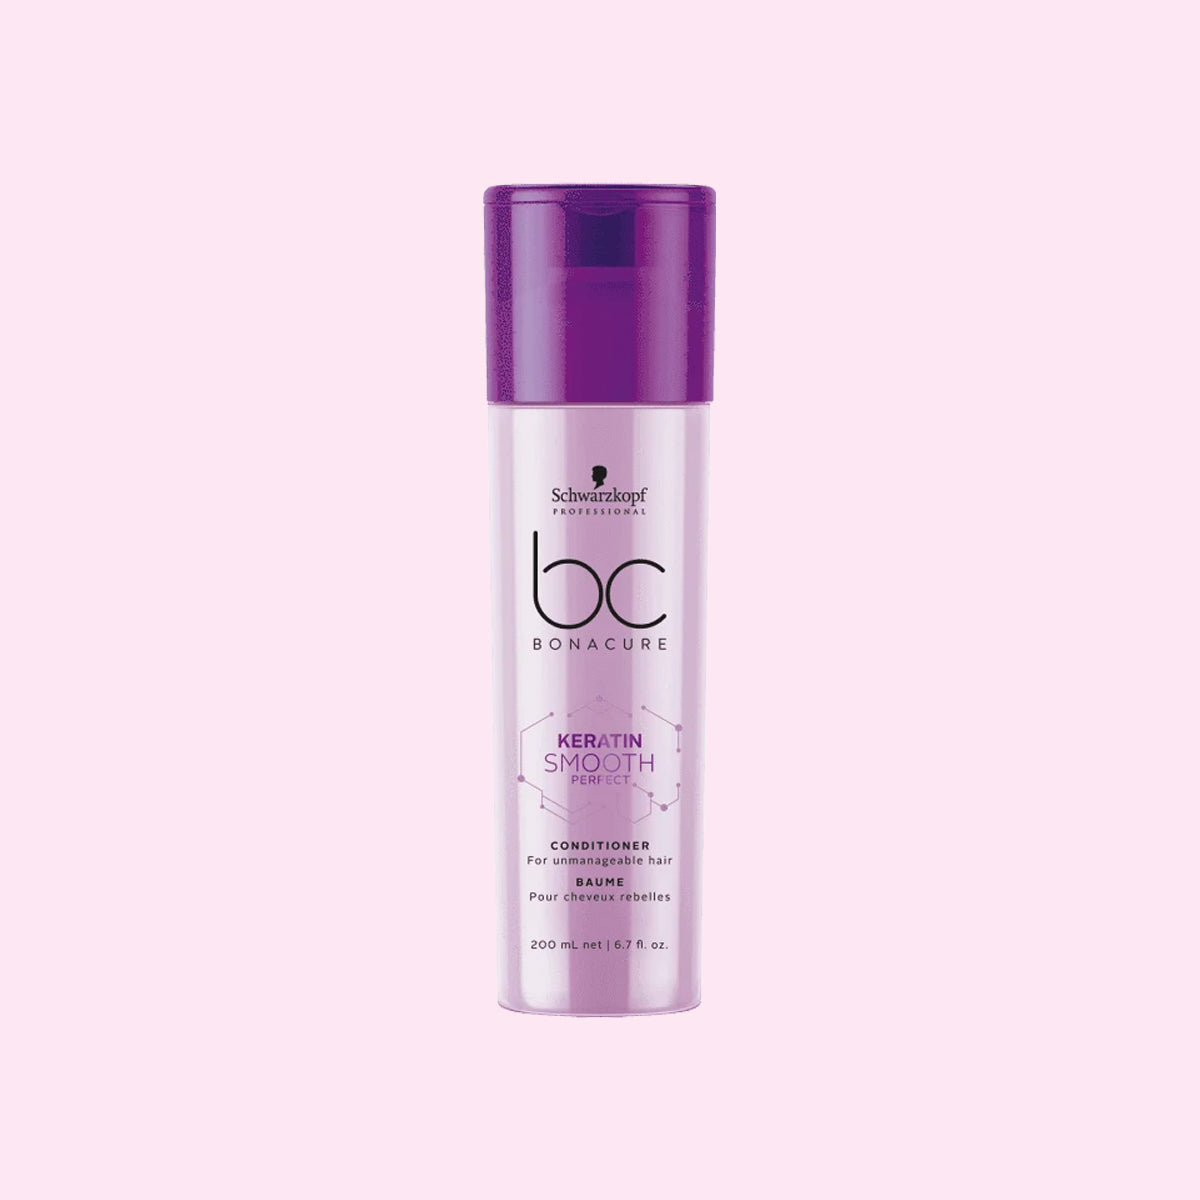 BONACURE Keratin Smooth Conditioner 200ml